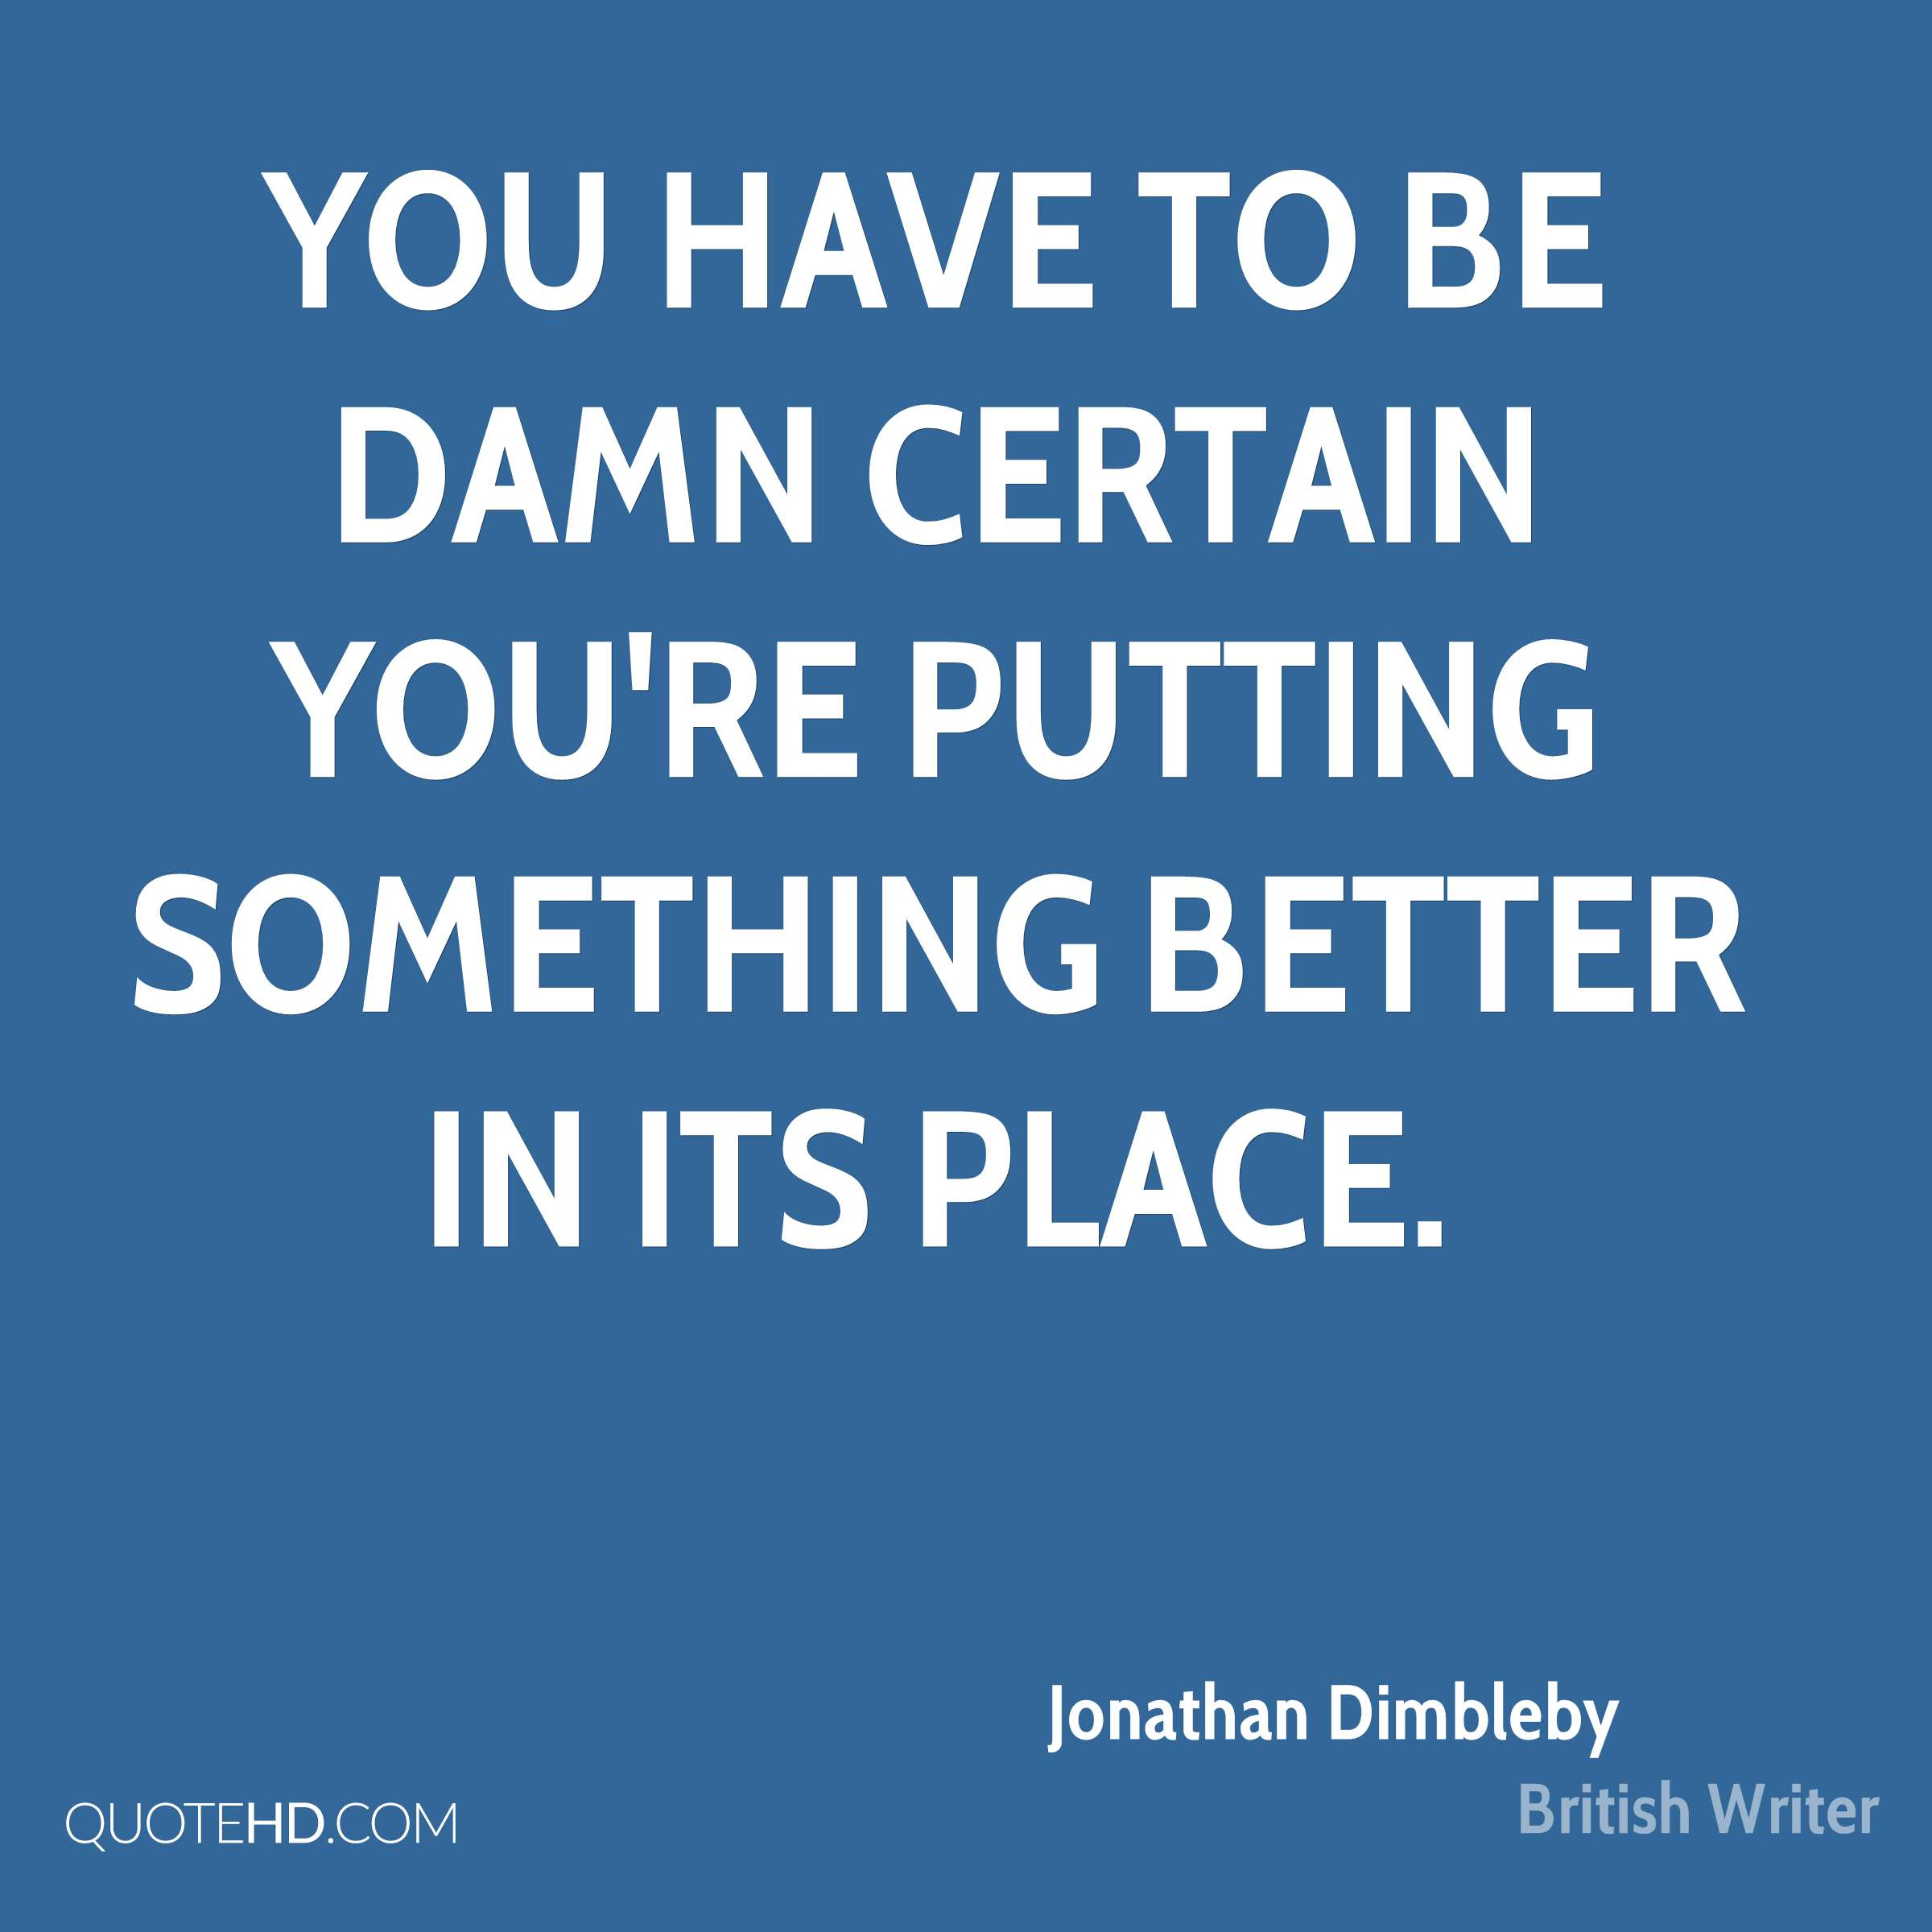 You have to be damn certain you're putting something better in its place.